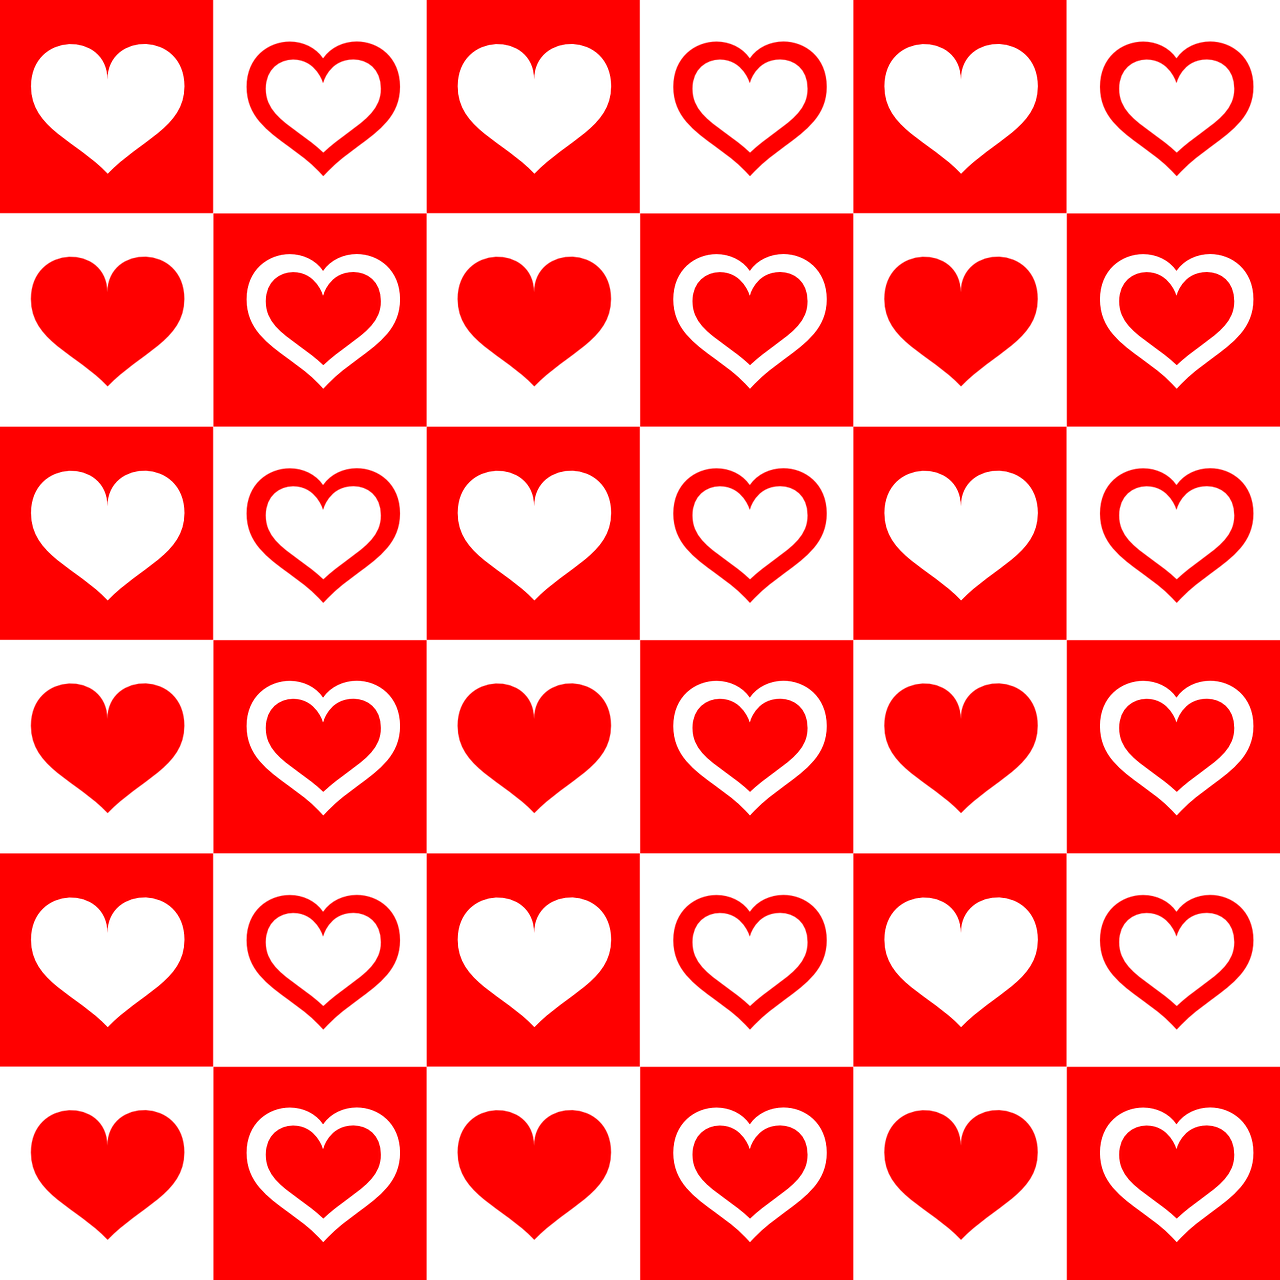 Selfie jay county public. Valentine clipart photo booth